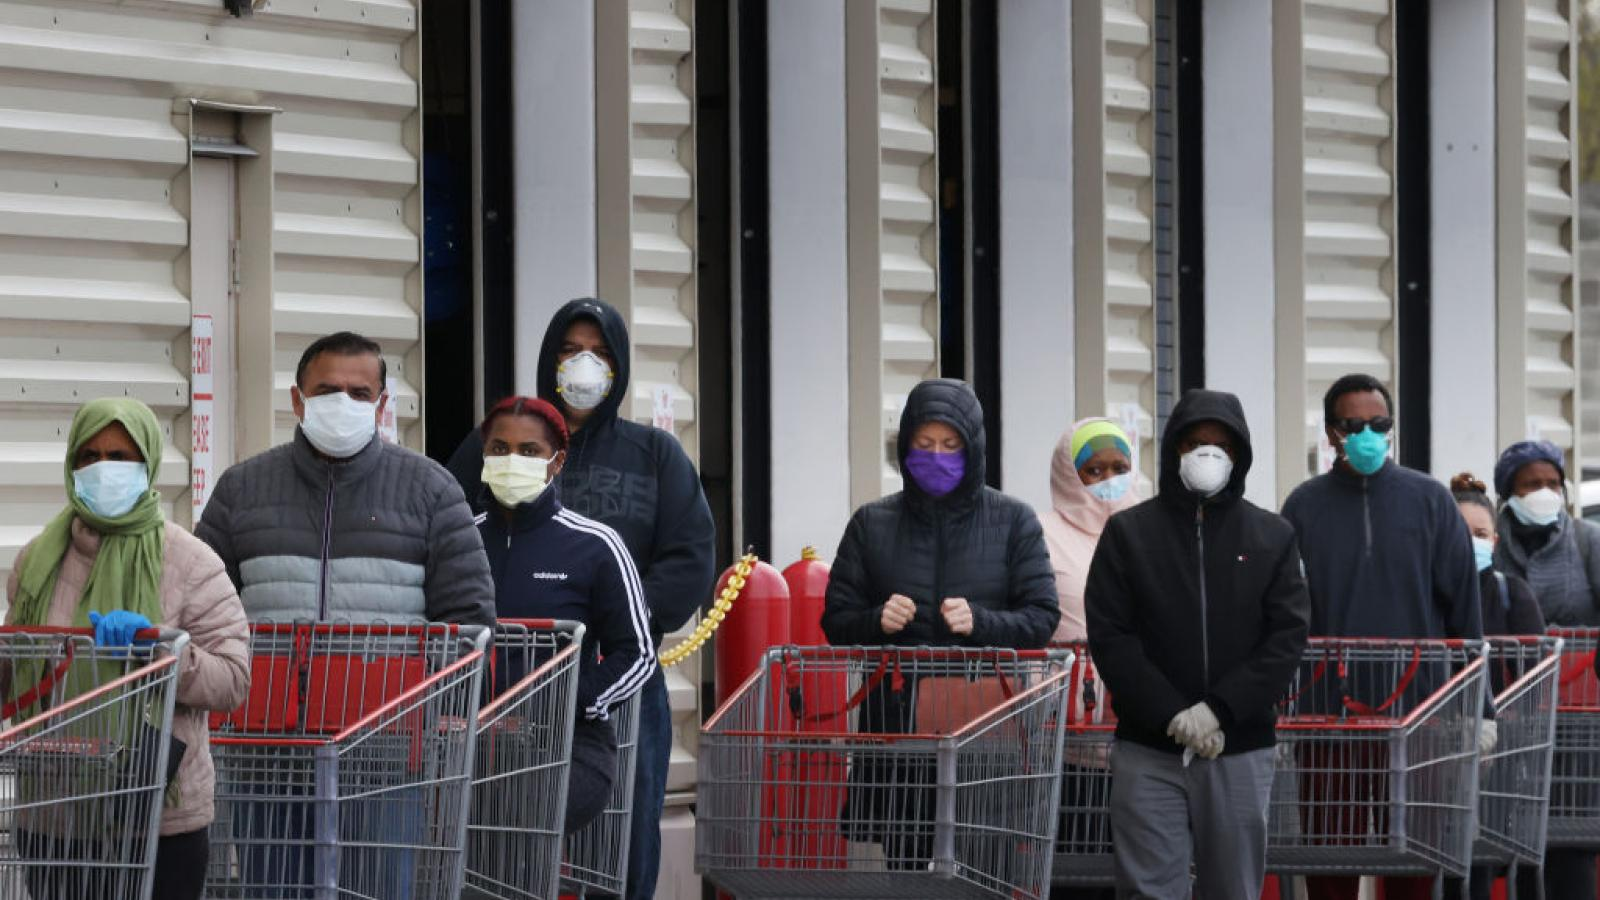 Shoppers wait in line while wearing masks